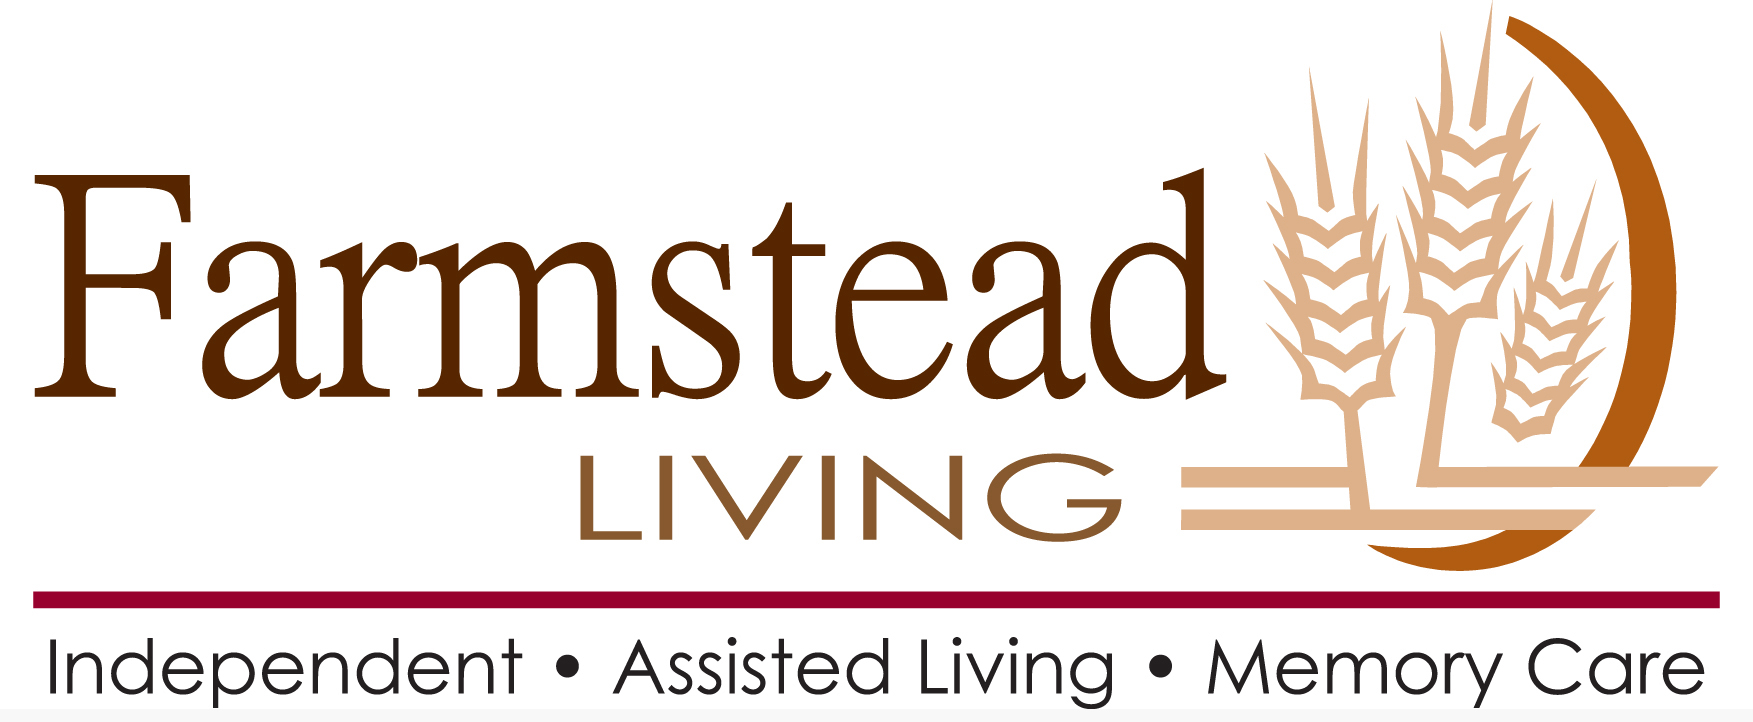 Farmstead Care logo